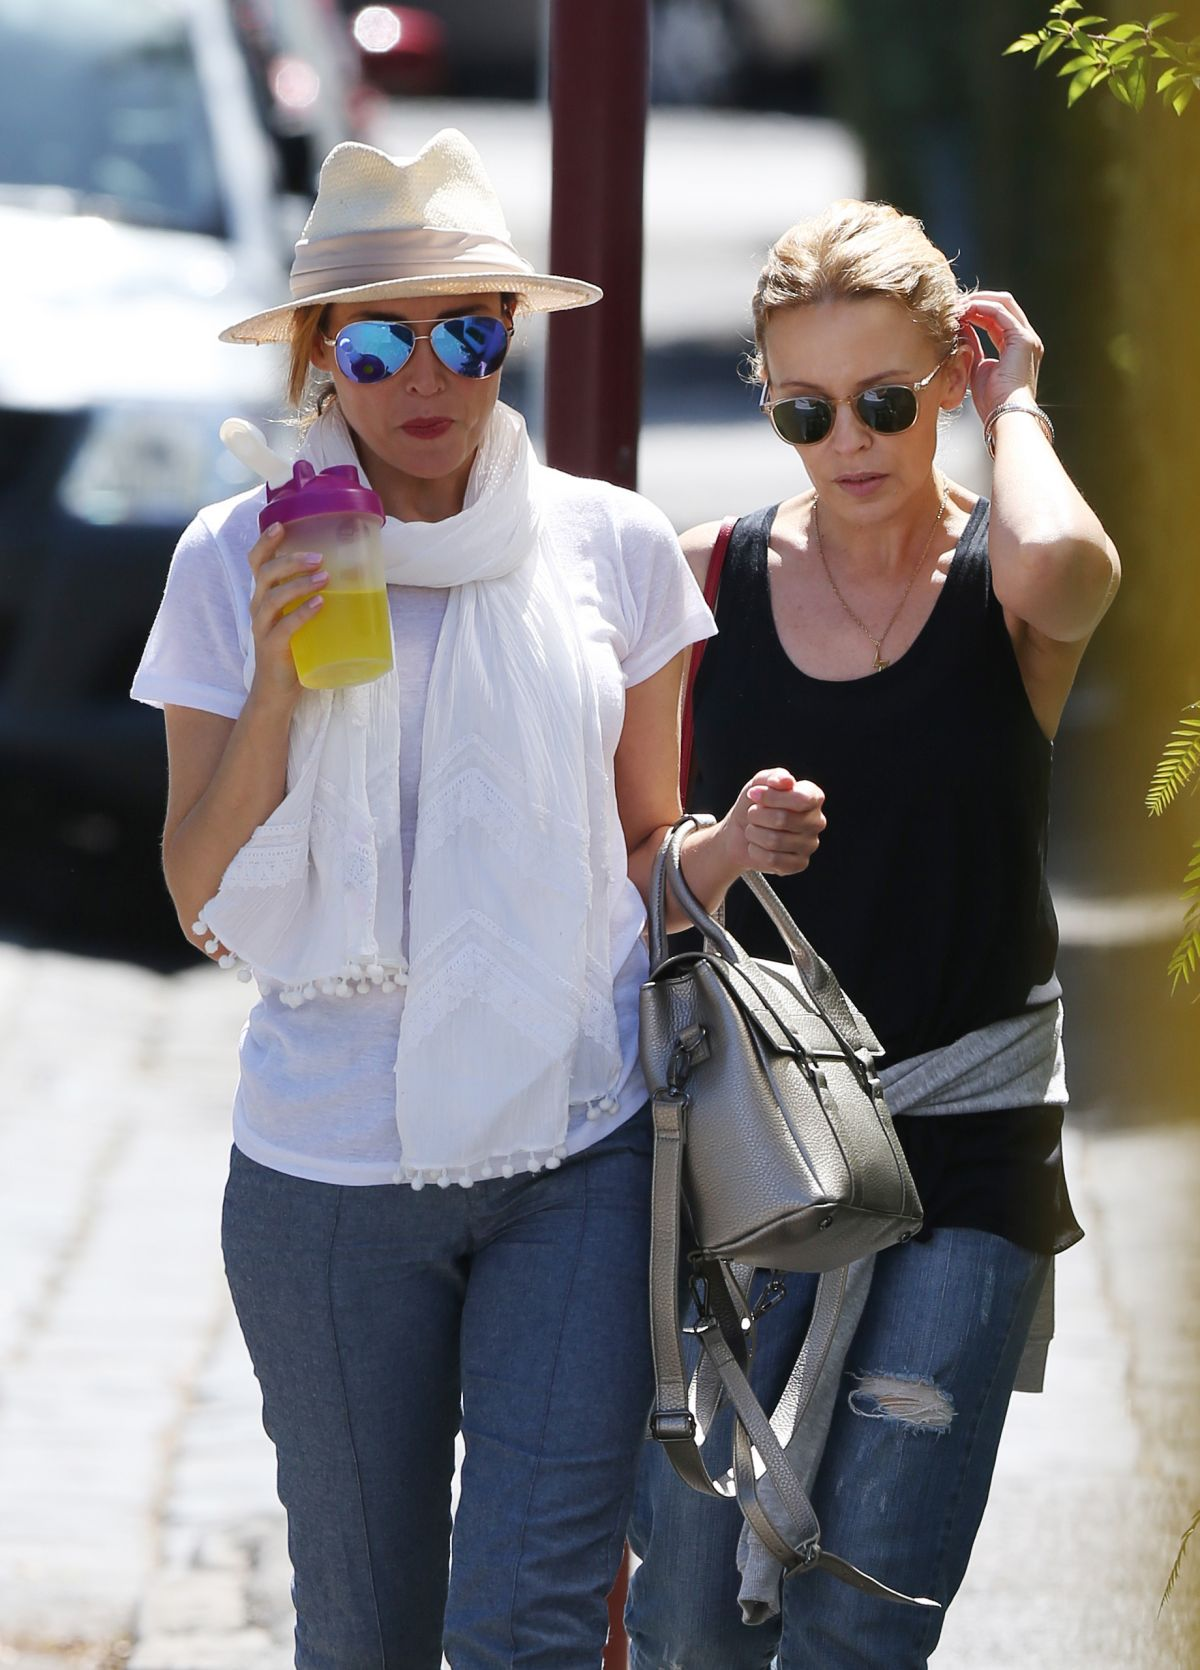 KYLIE and DANNII MINOGUE Out and About in Melbourne